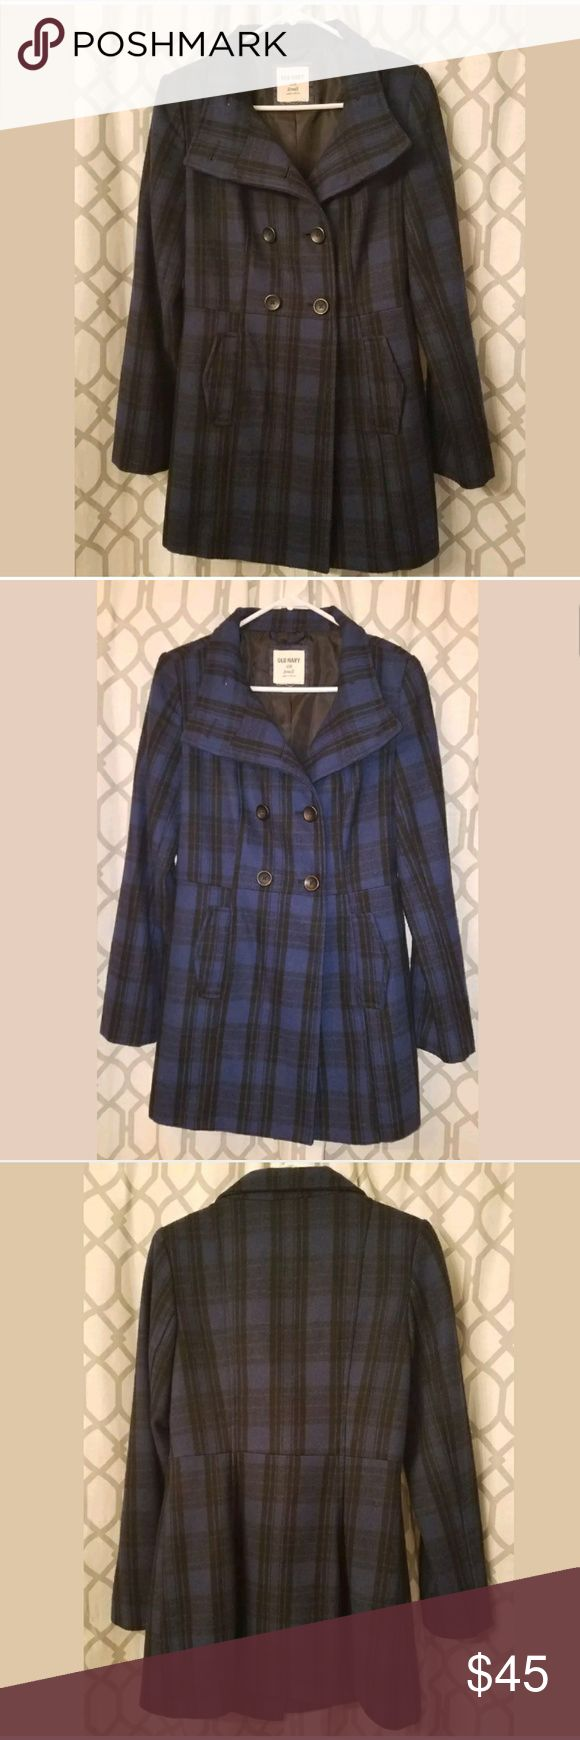 Old Navy Plaid Pea Coat Size Small Old Navy Pea Coat Size Small New without tags, too small for me unfortunately  Blue and black plaid Pictures include one with and one without flash Old Navy Jackets & Coats Pea Coats